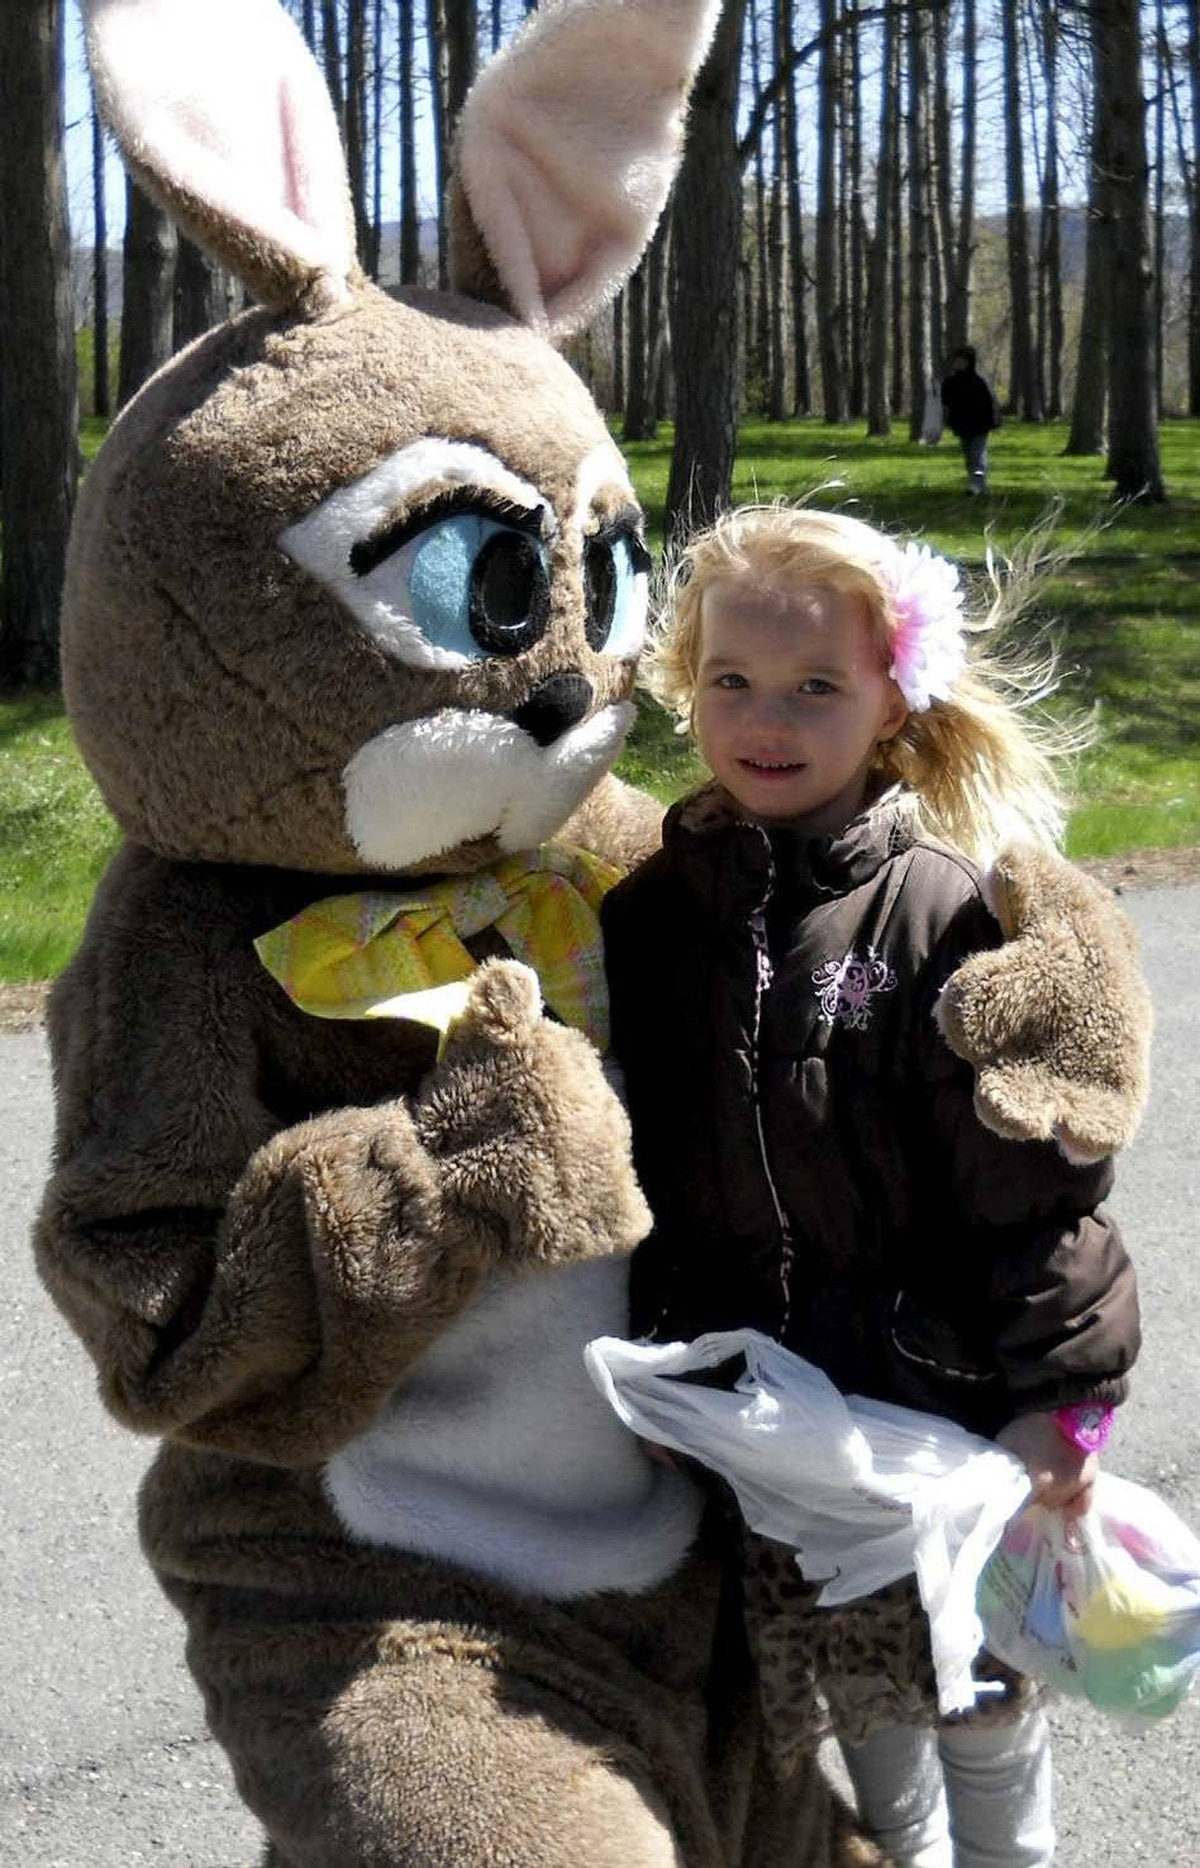 Don't look so down, kid at an Easter egg hunt in Pennsylvania on Saturday: You could be getting hugged by this next furry Easter celebrant.